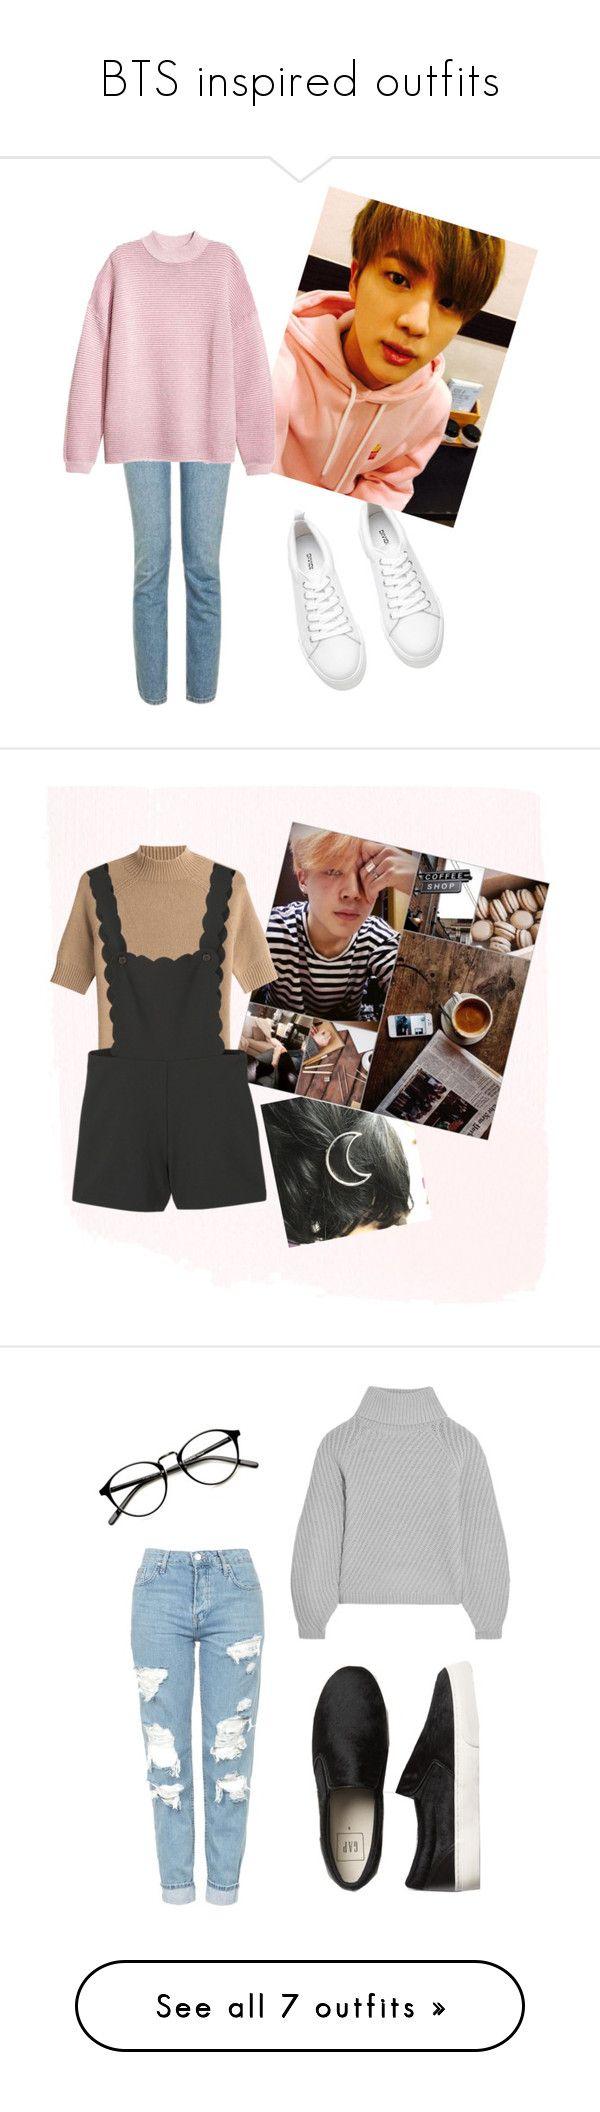 """""""BTS inspired outfits"""" by bangtan-lover ❤ liked on Polyvore featuring H&M, Topshop, Theory, MANGO, Iris & Ink, STELLA McCARTNEY, Gap, Balmain, Current/Elliott and Vince"""